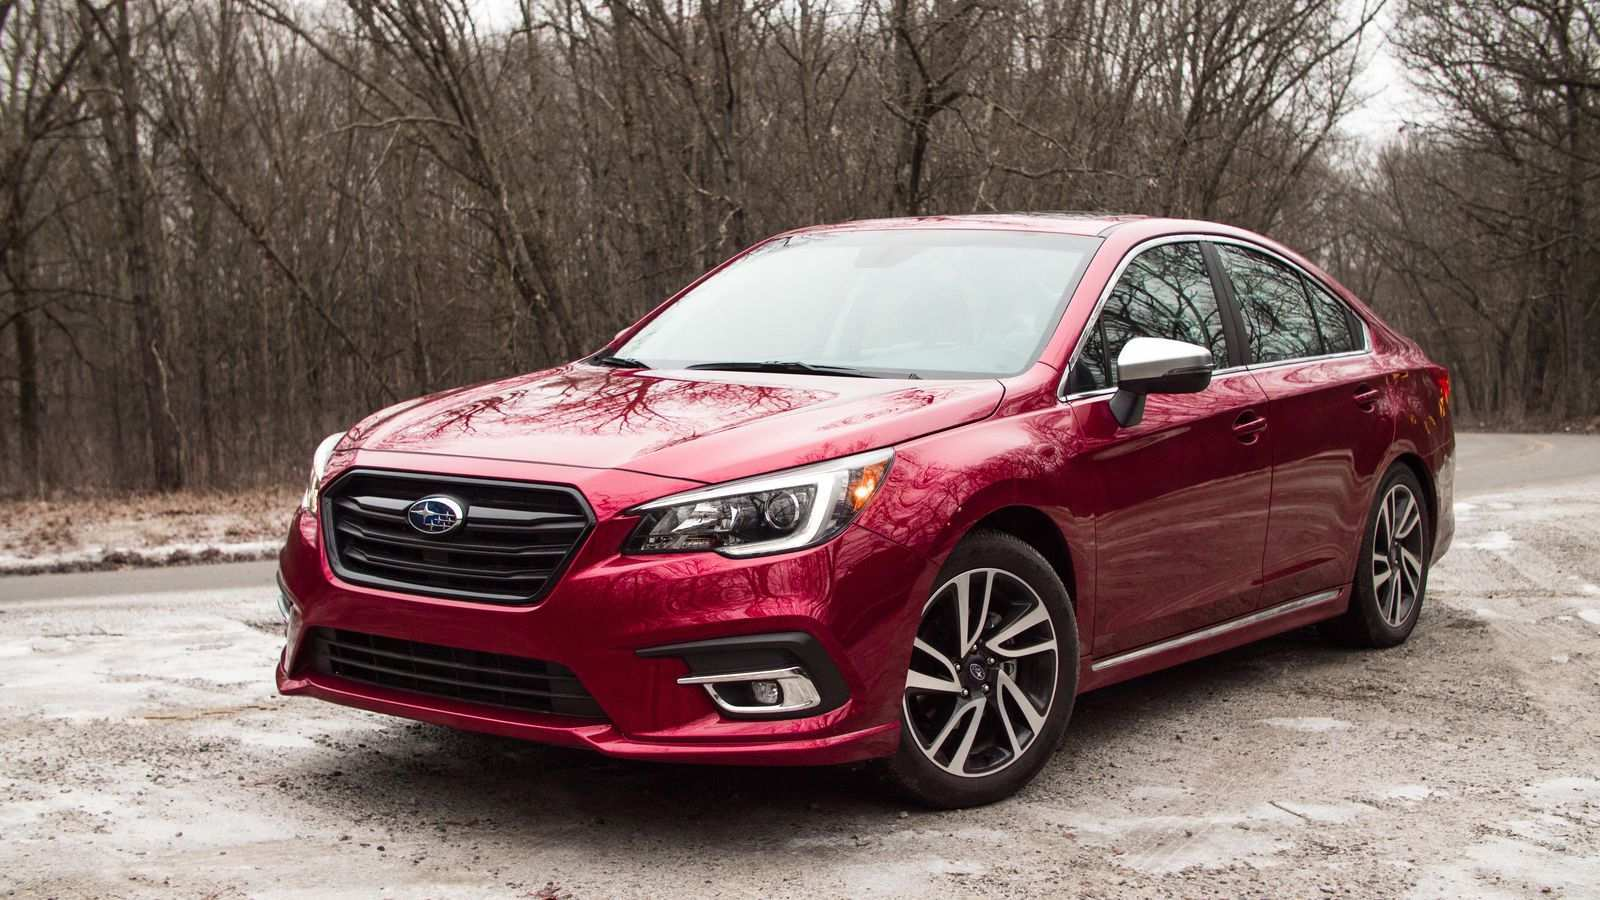 59 All New Subaru Eyesight 2019 Ratings